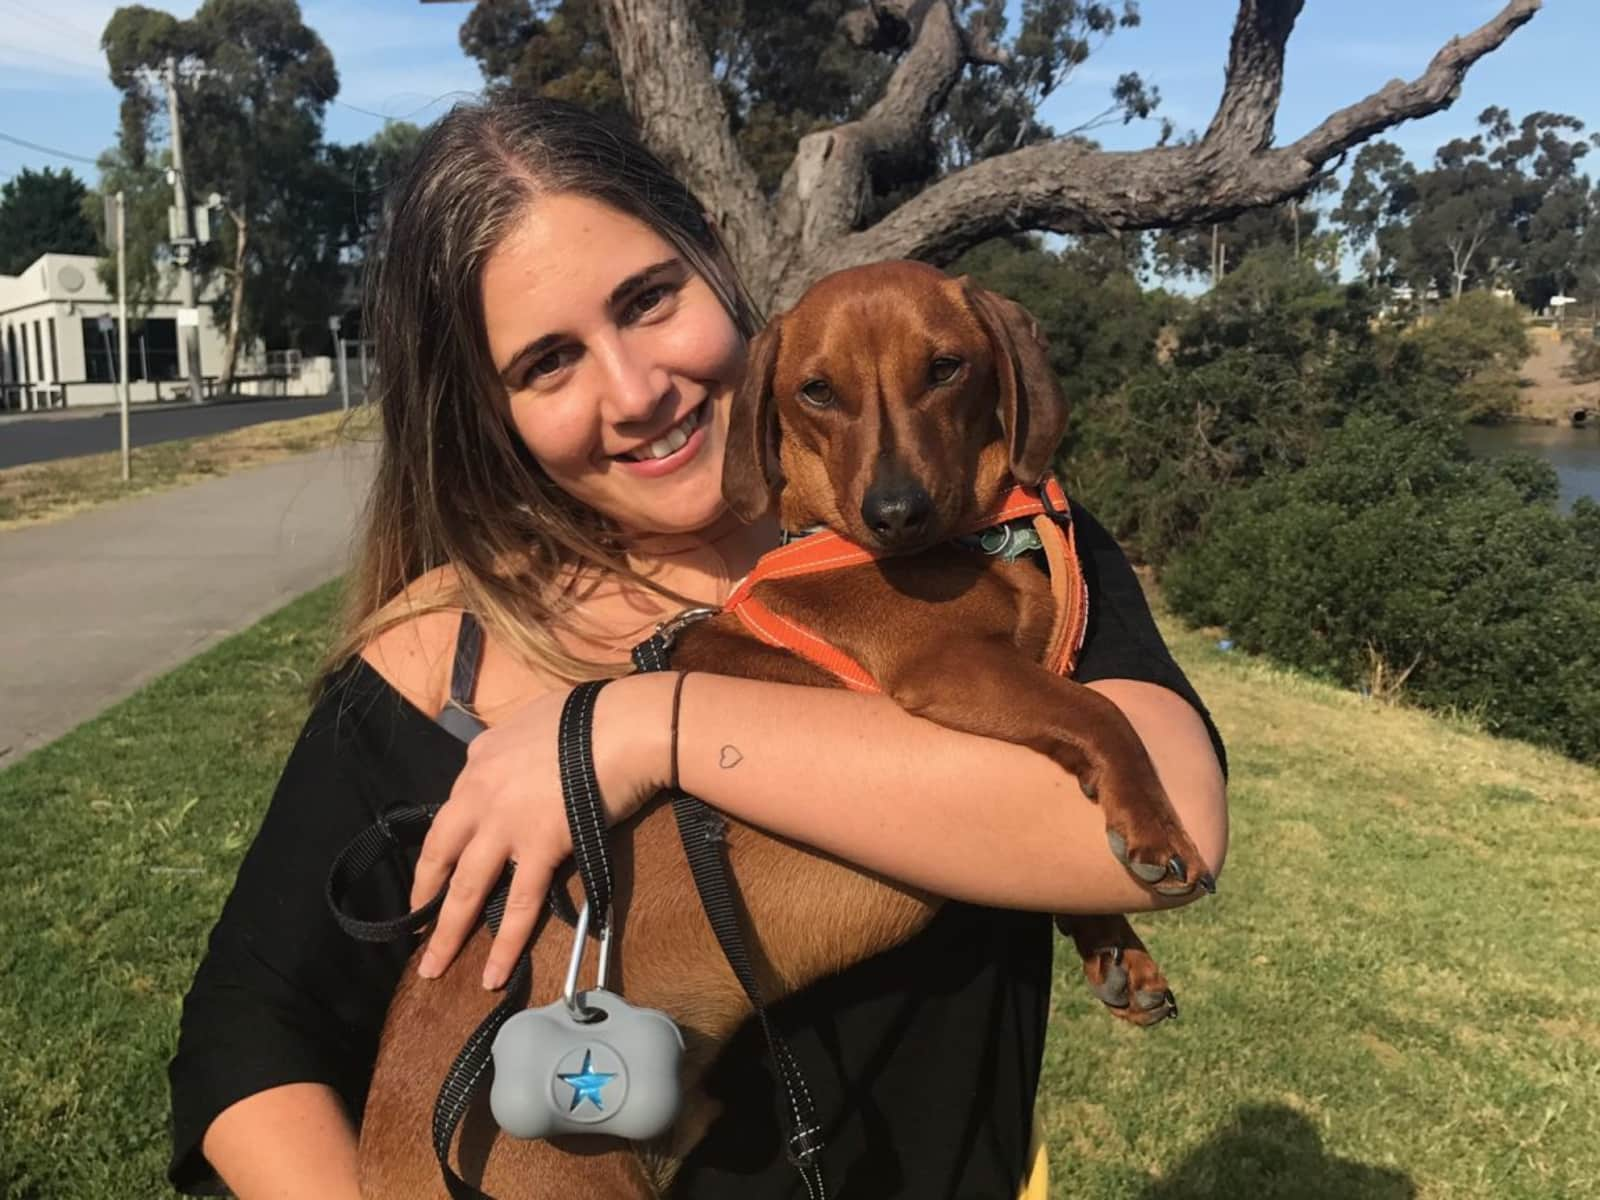 Stacey from Sydney, New South Wales, Australia